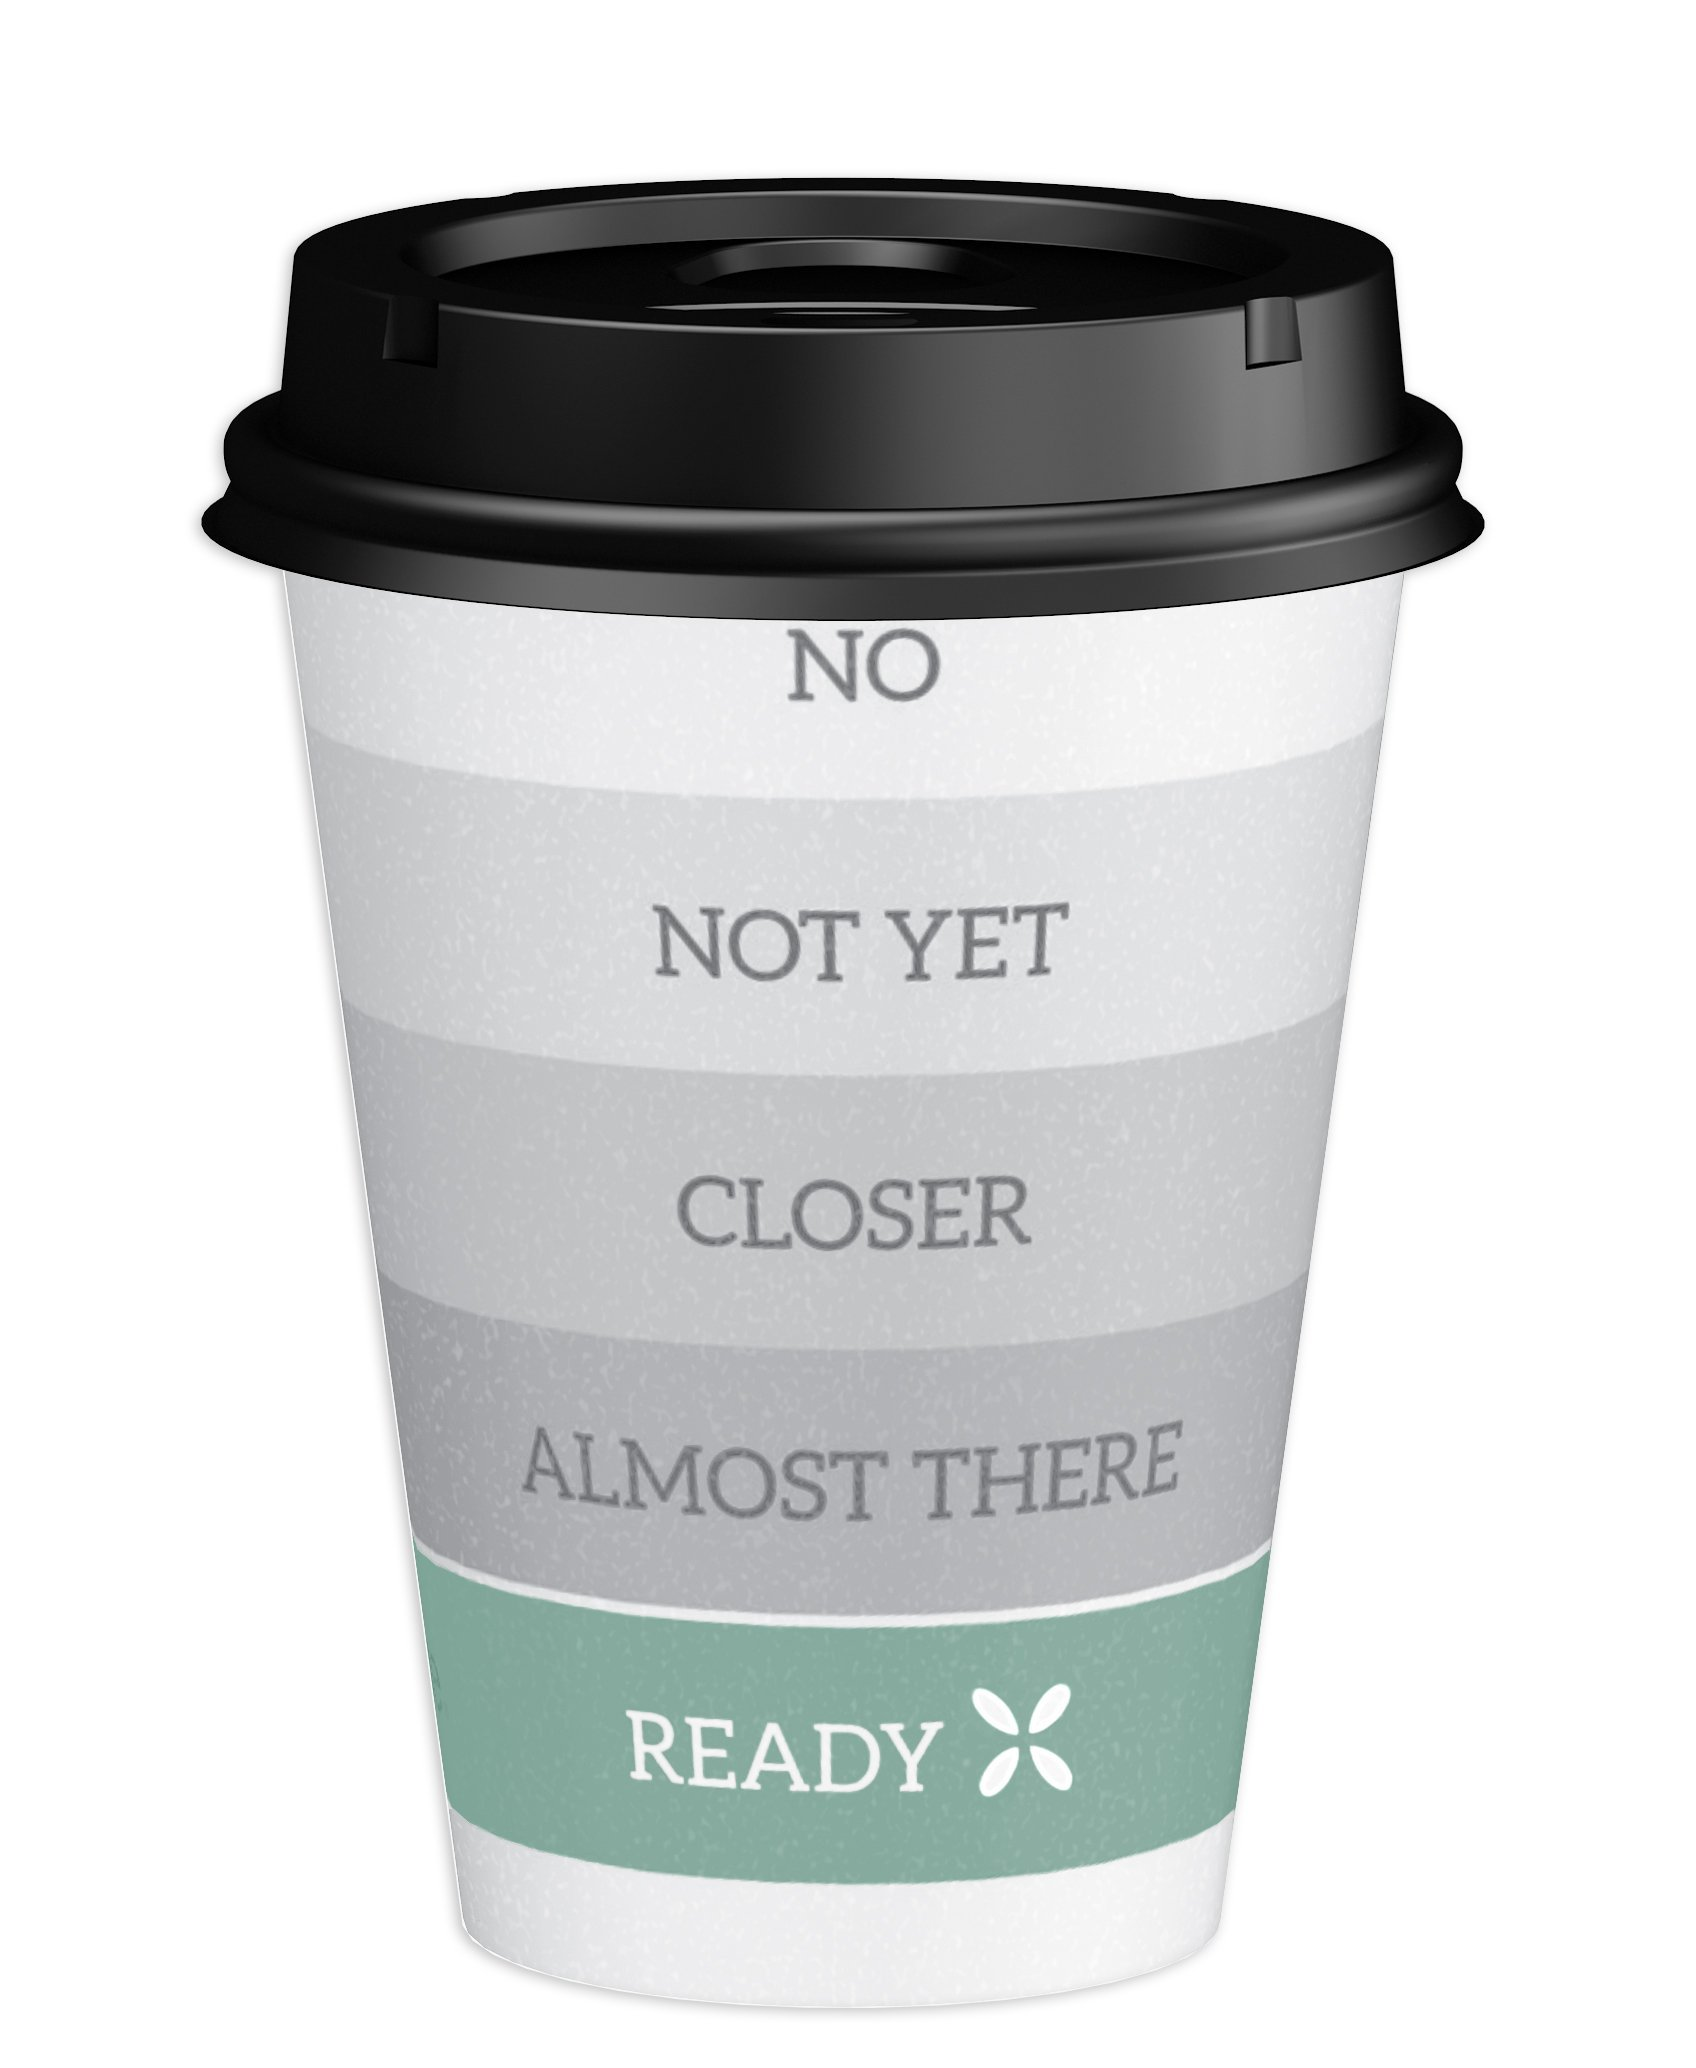 Dixie To Go Hot Beverage Cups & Lids, 12 Oz, 156 count, Assorted Designs, 6 Packs of 26 Count, Disposable Paper Coffee Cups & Lids by Dixie (Image #6)